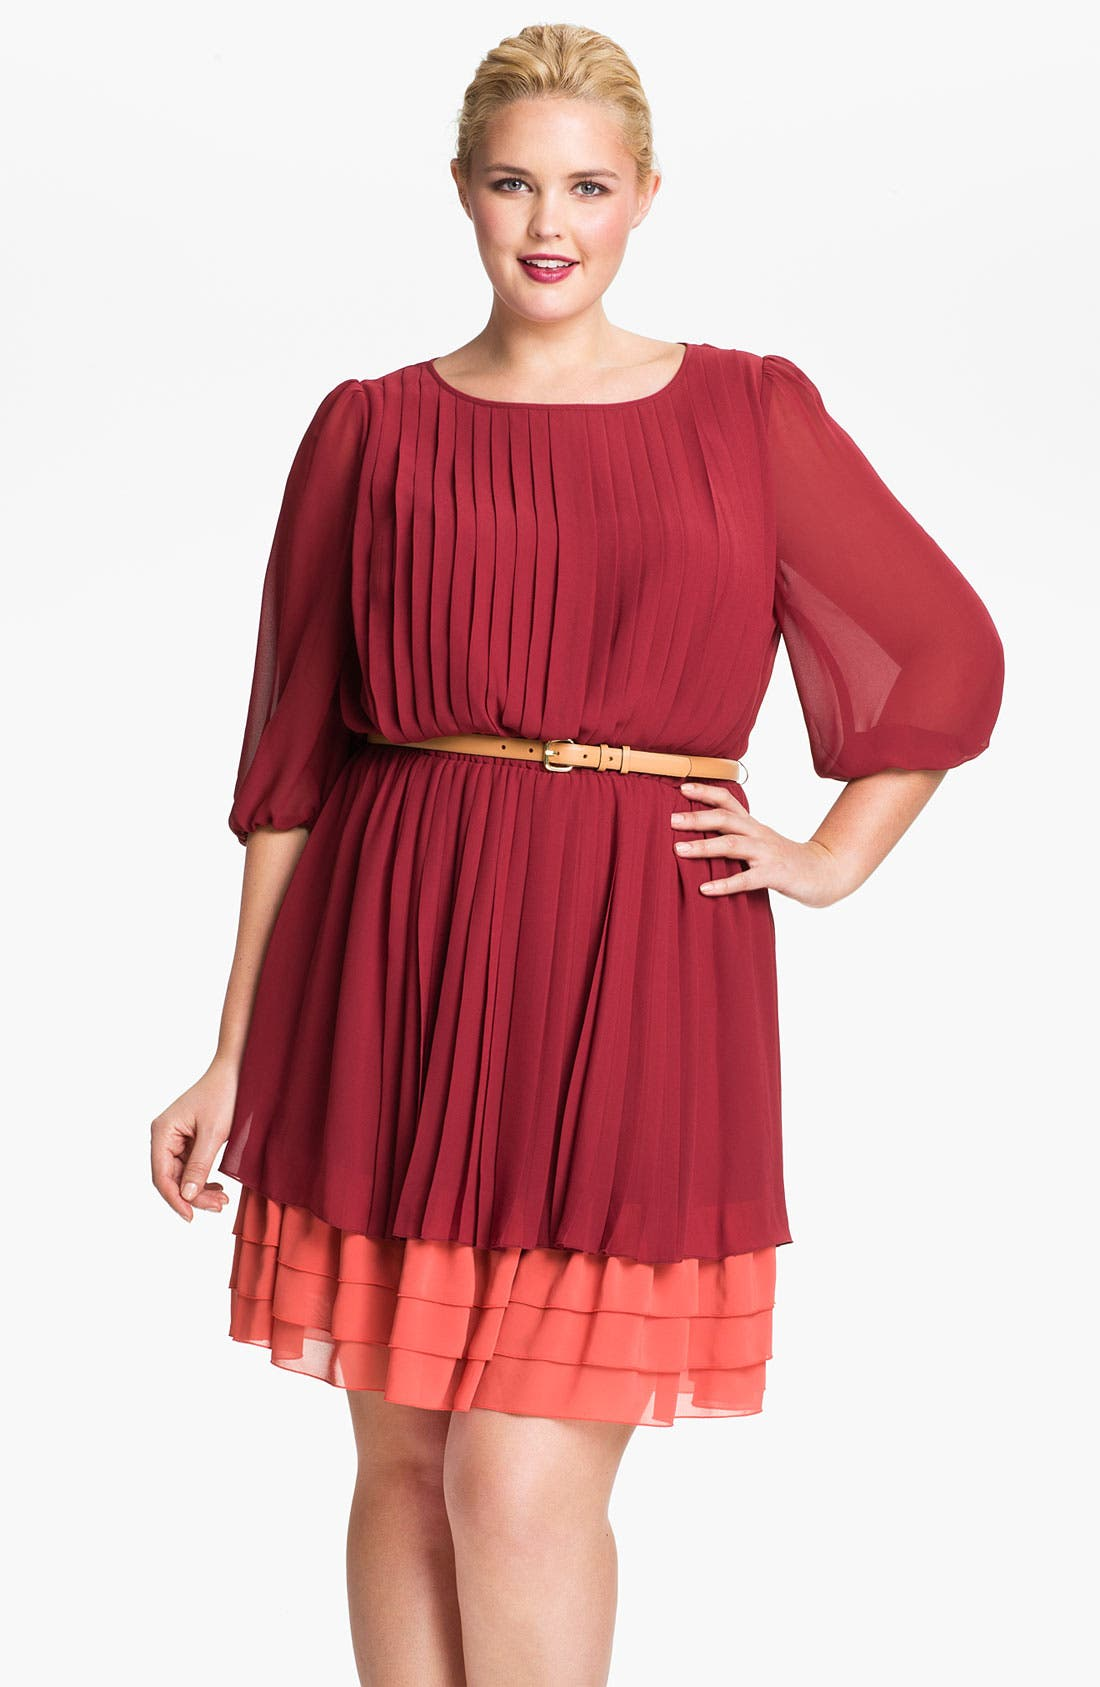 Alternate Image 1 Selected - Jessica Simpson Pleated Chiffon Blouson Dress (Plus)